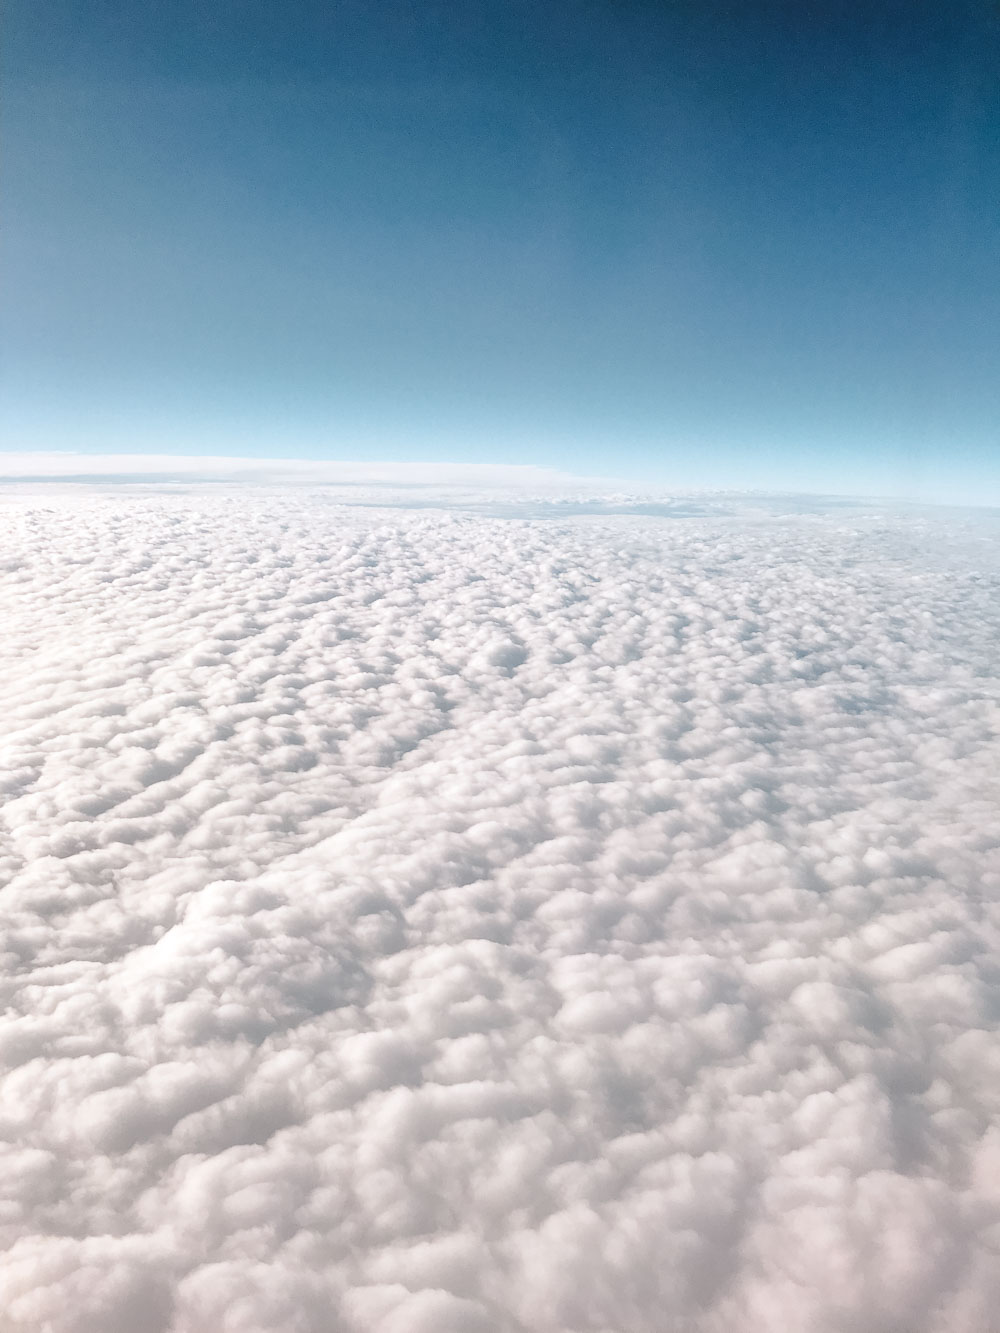 Flying in an airplane above the clouds